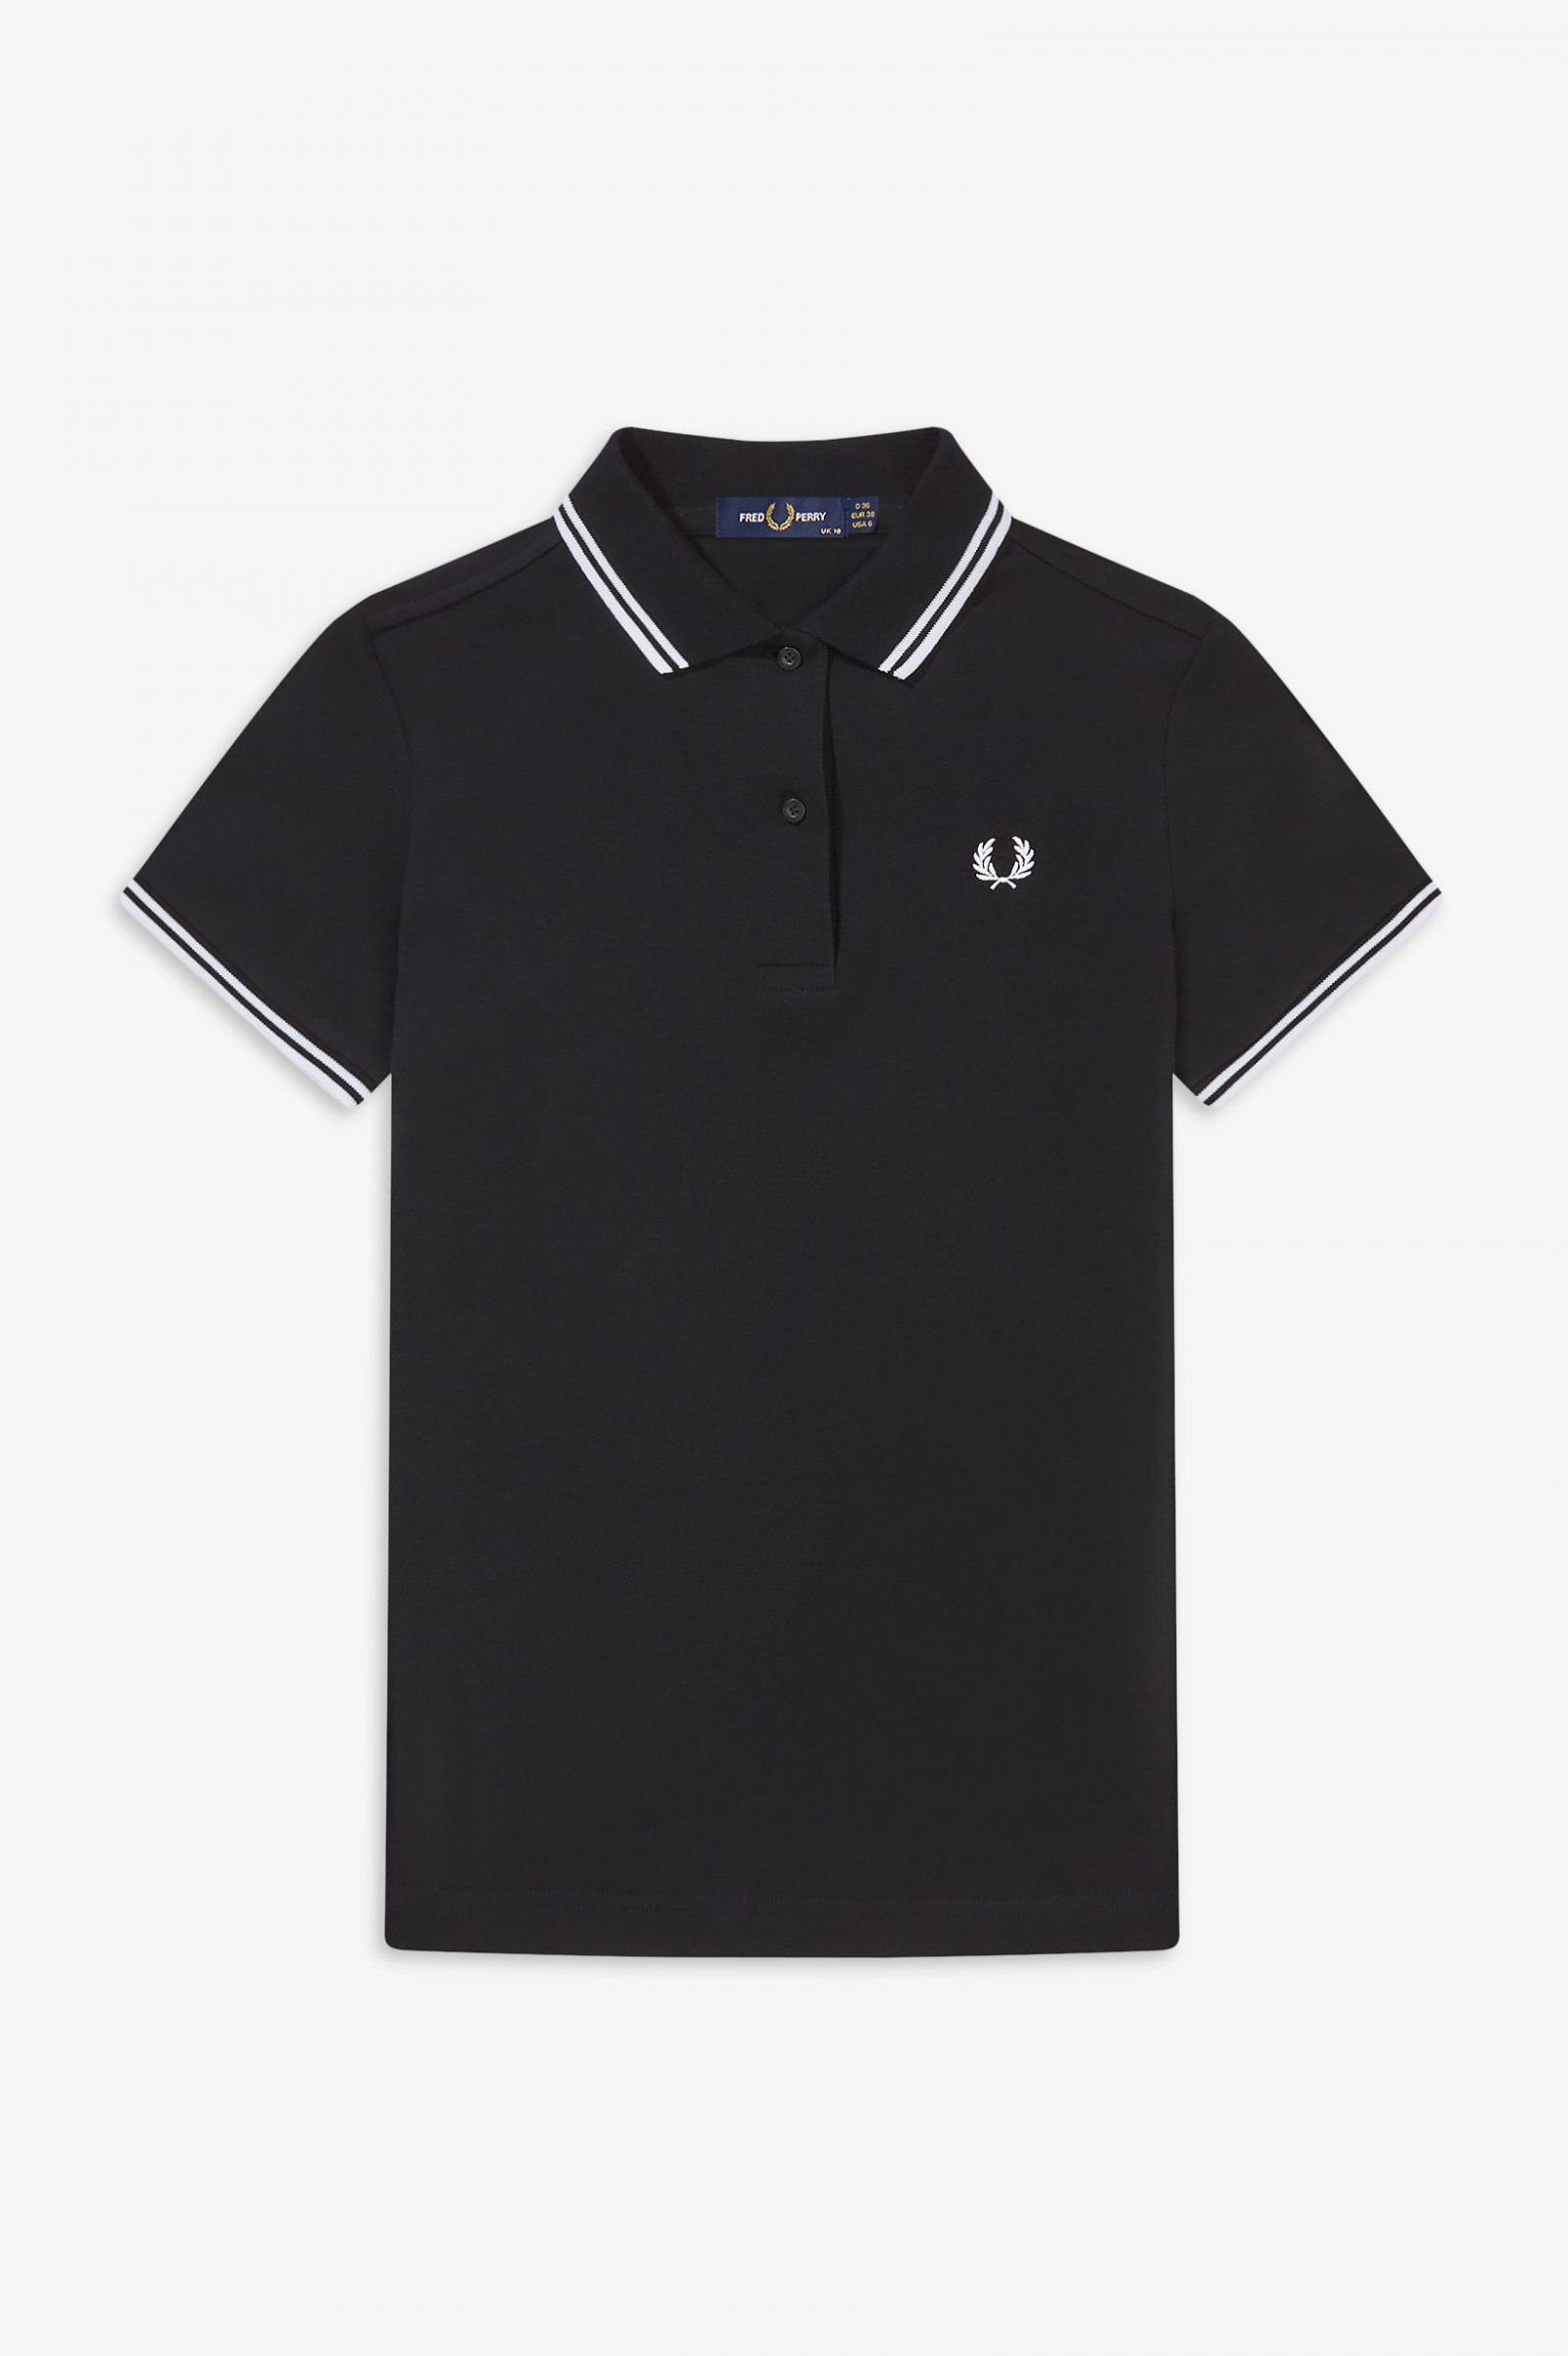 Fred Perry polo señora Negro//Amarillo g9762 506 6066